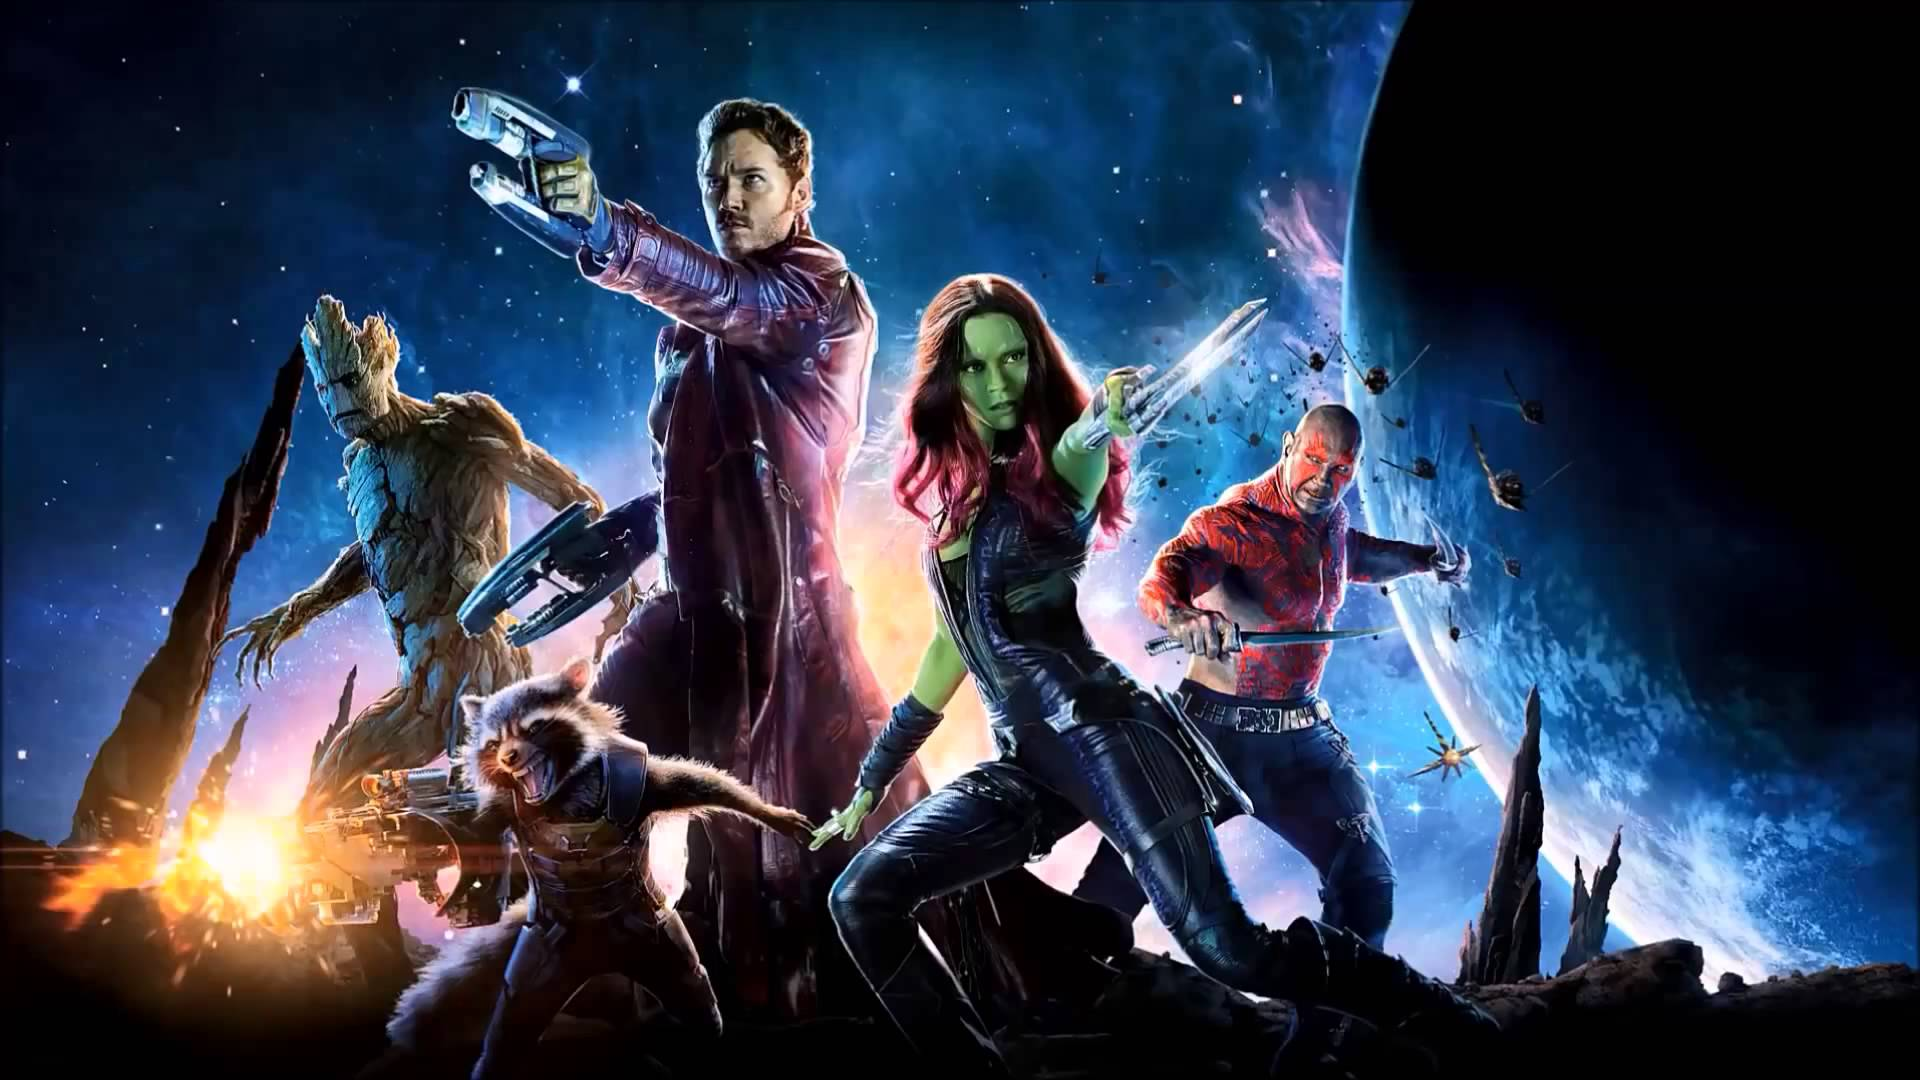 Guardians-of-The-Galaxy-FULL-Soundtrack-COMPLETE-Album-CD-CD-wallpaper-wpc9005675